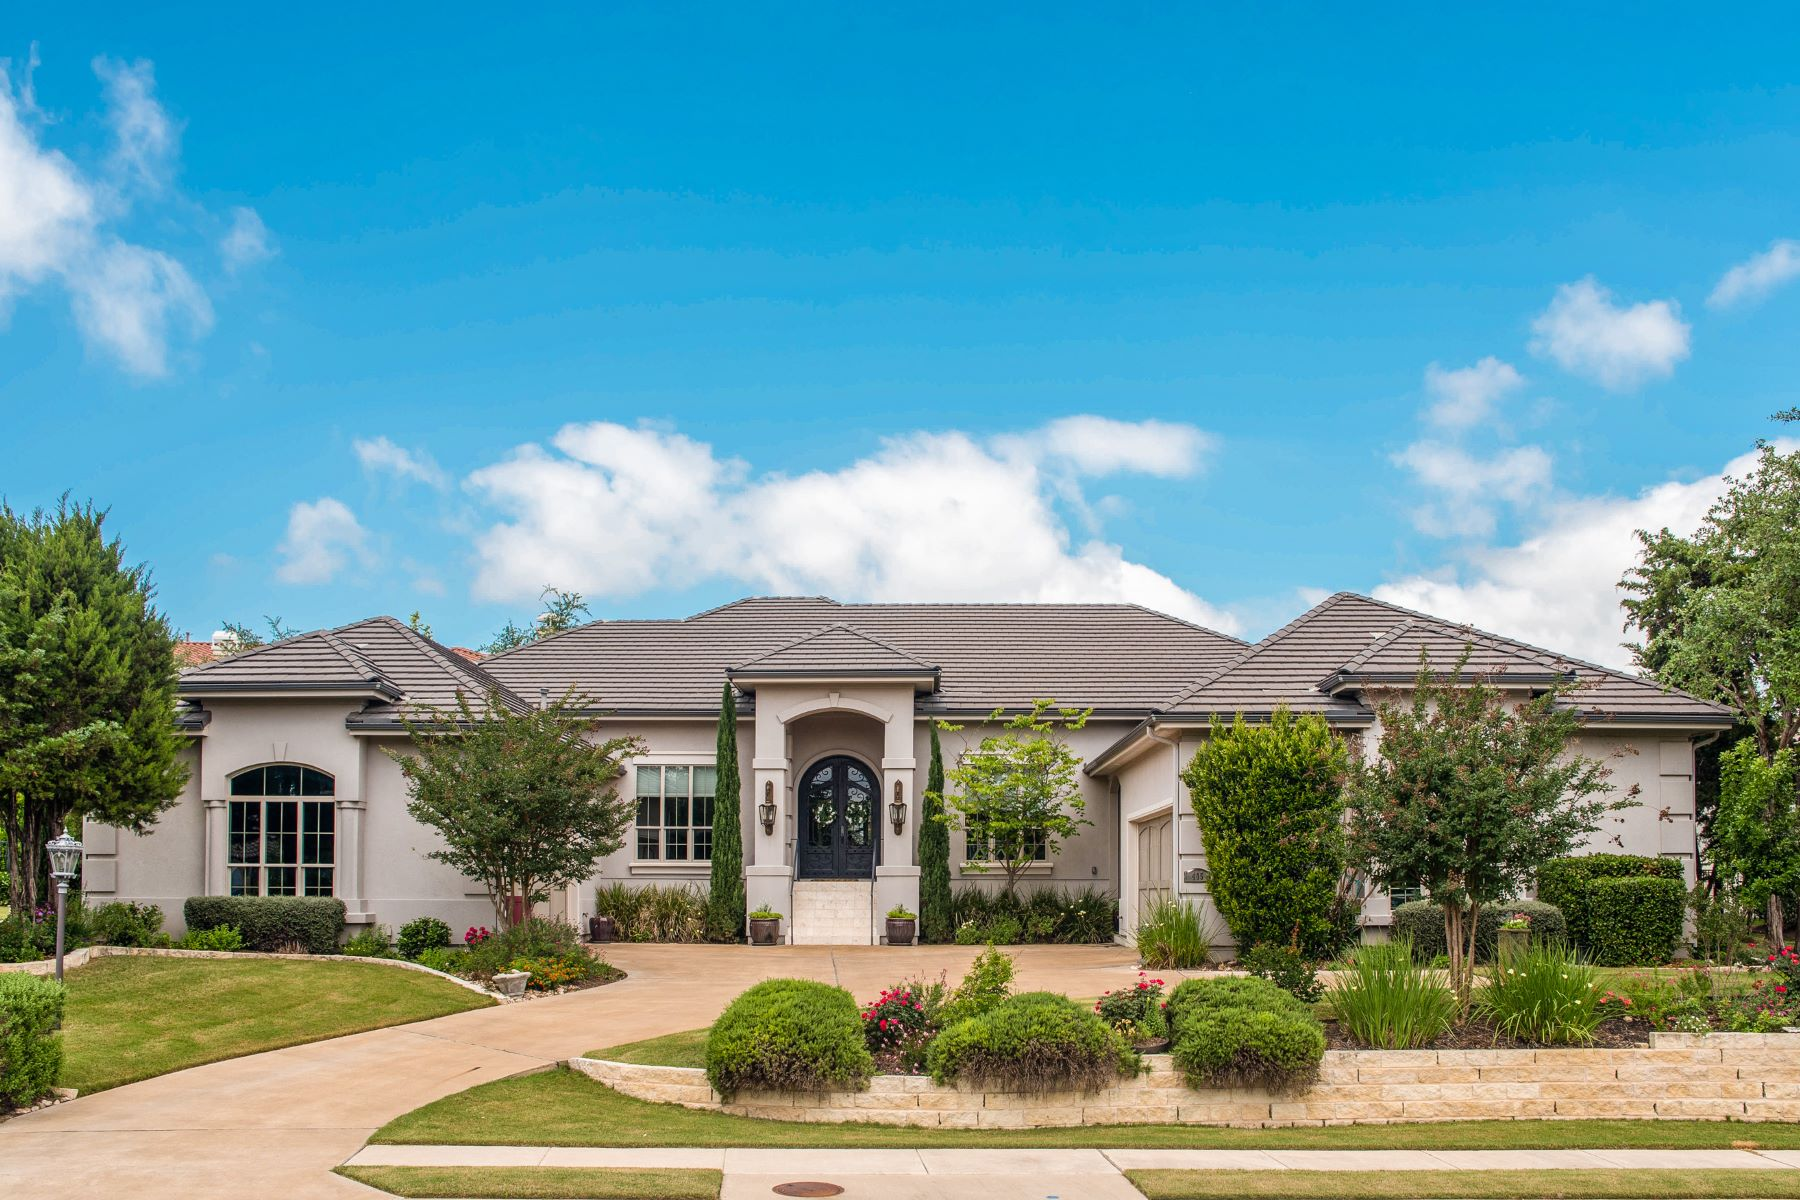 Single Family Home for Sale at Elegant Single Story 405 Black Wolf Run Lakeway, Texas 78738 United States